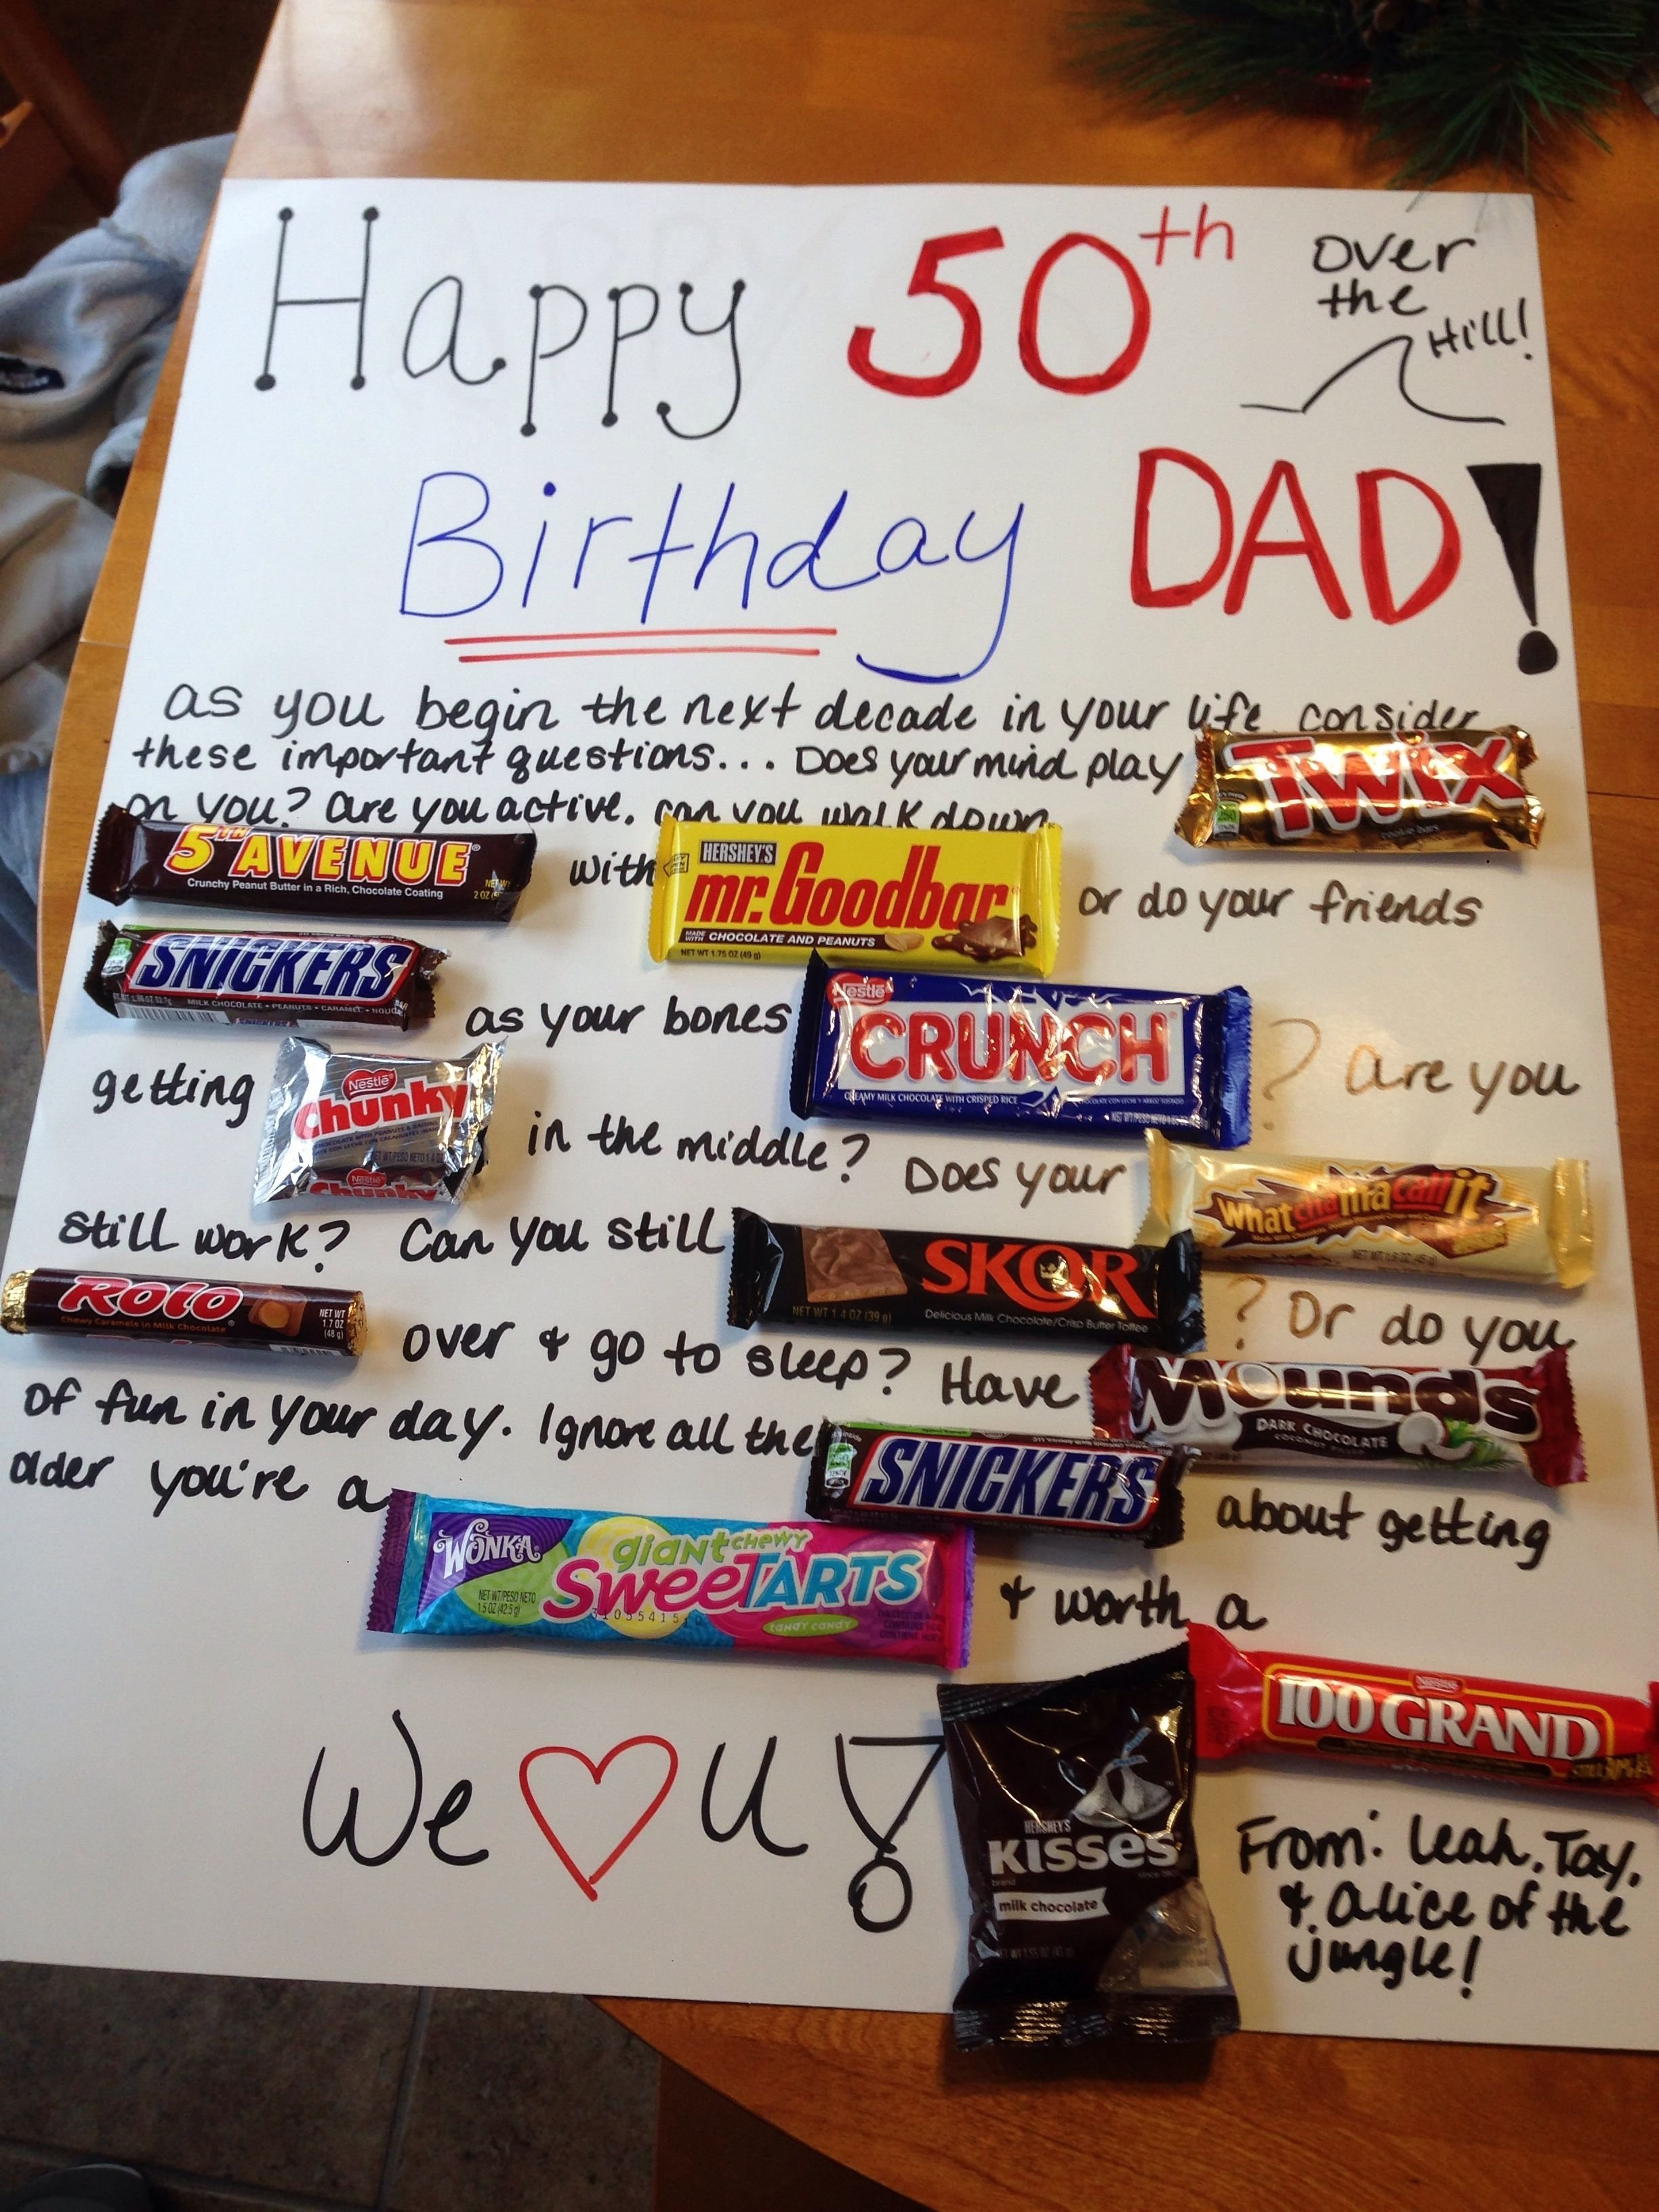 10 Amazing Gift Ideas For Your Dad 40th Birthday 50th Uncle